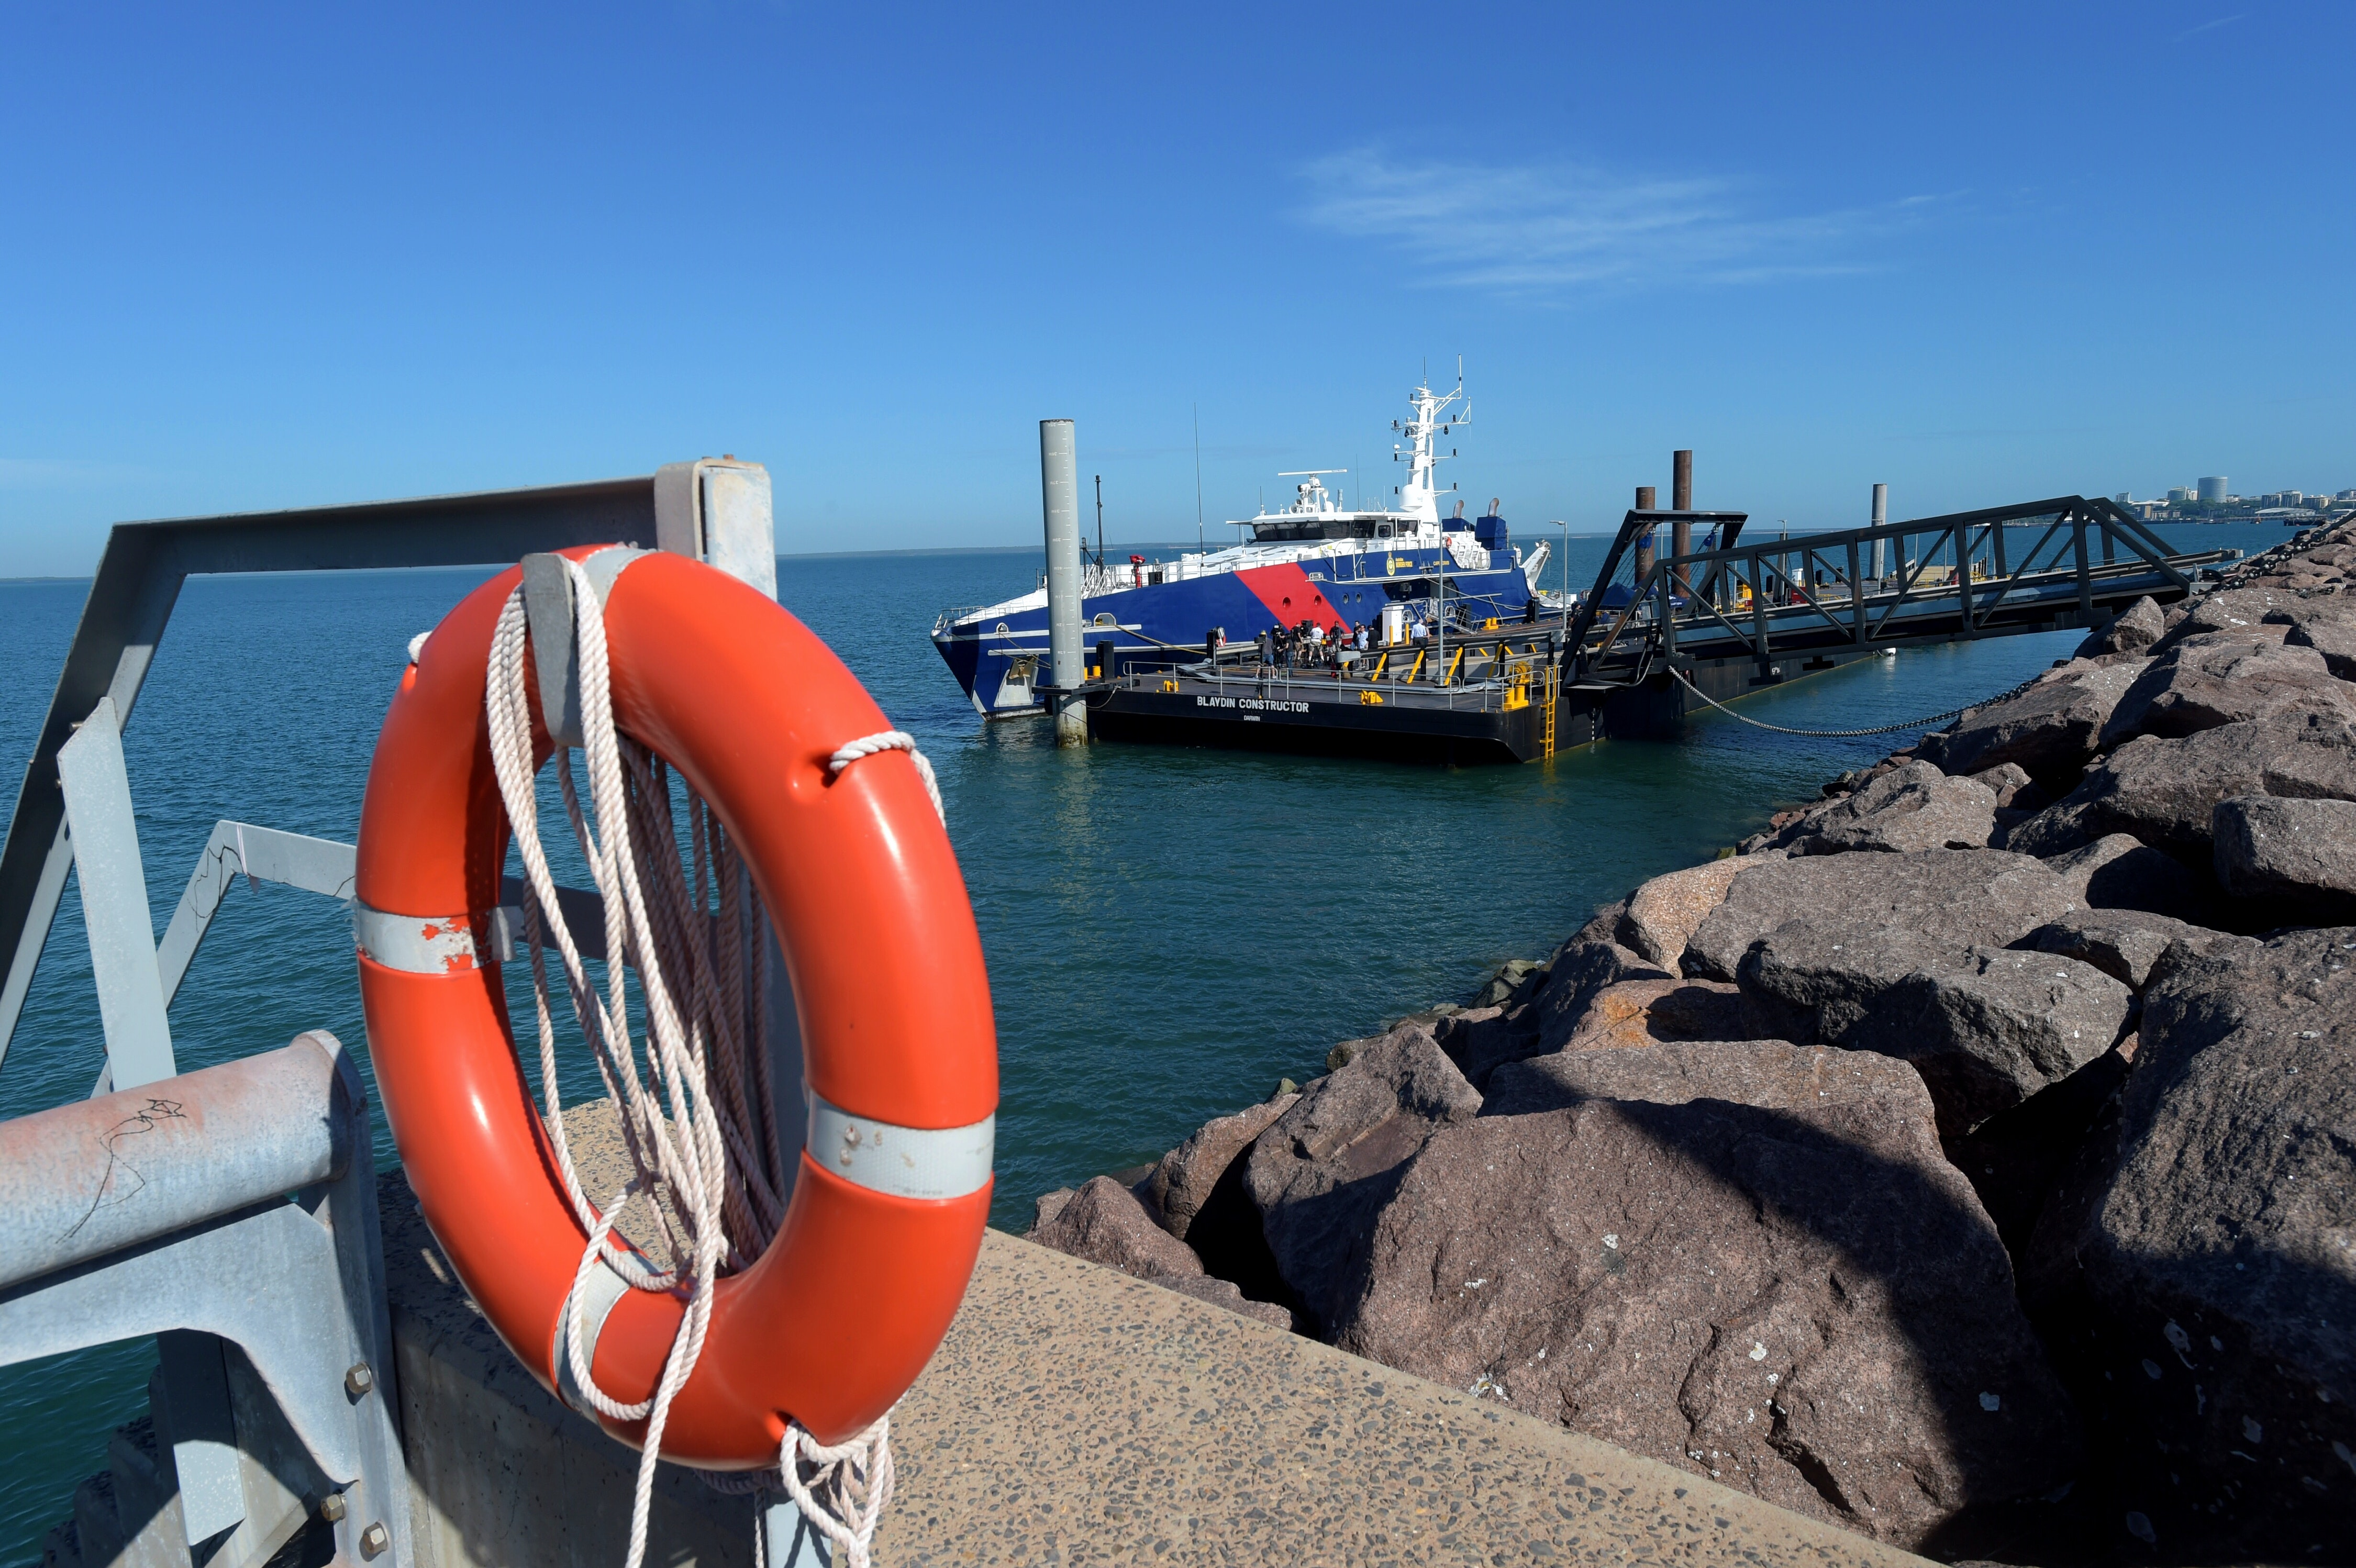 Darwin port's sale is a blueprint for China's future economic expansion